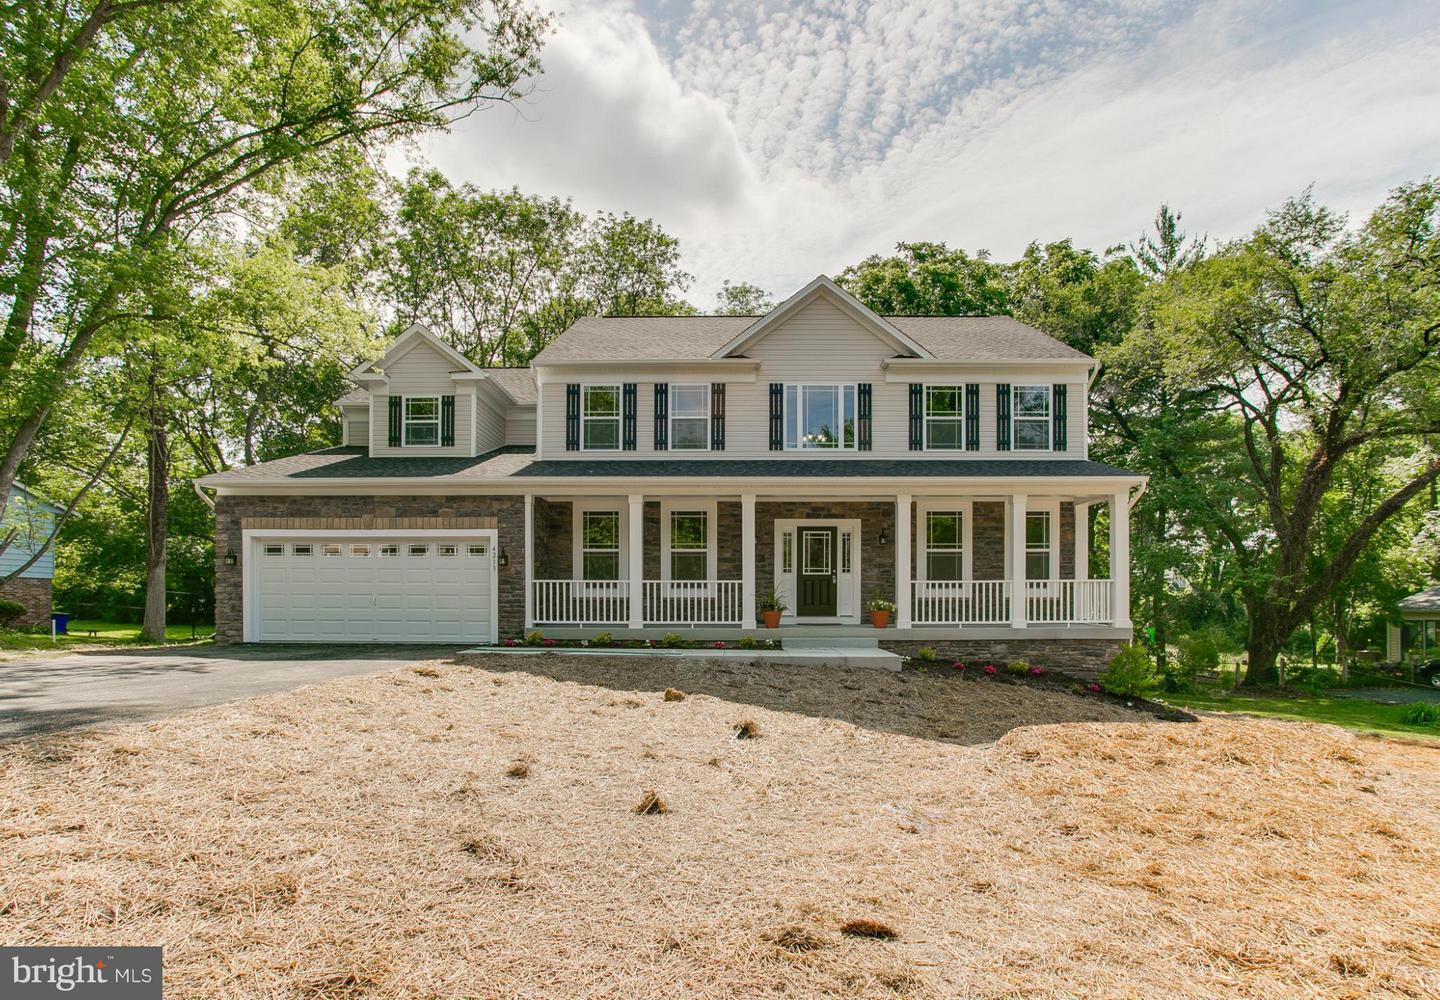 Single Family Home for Sale at Lot 7 Phelps Lane Lot 7 Phelps Lane Hanover, Maryland 21076 United States